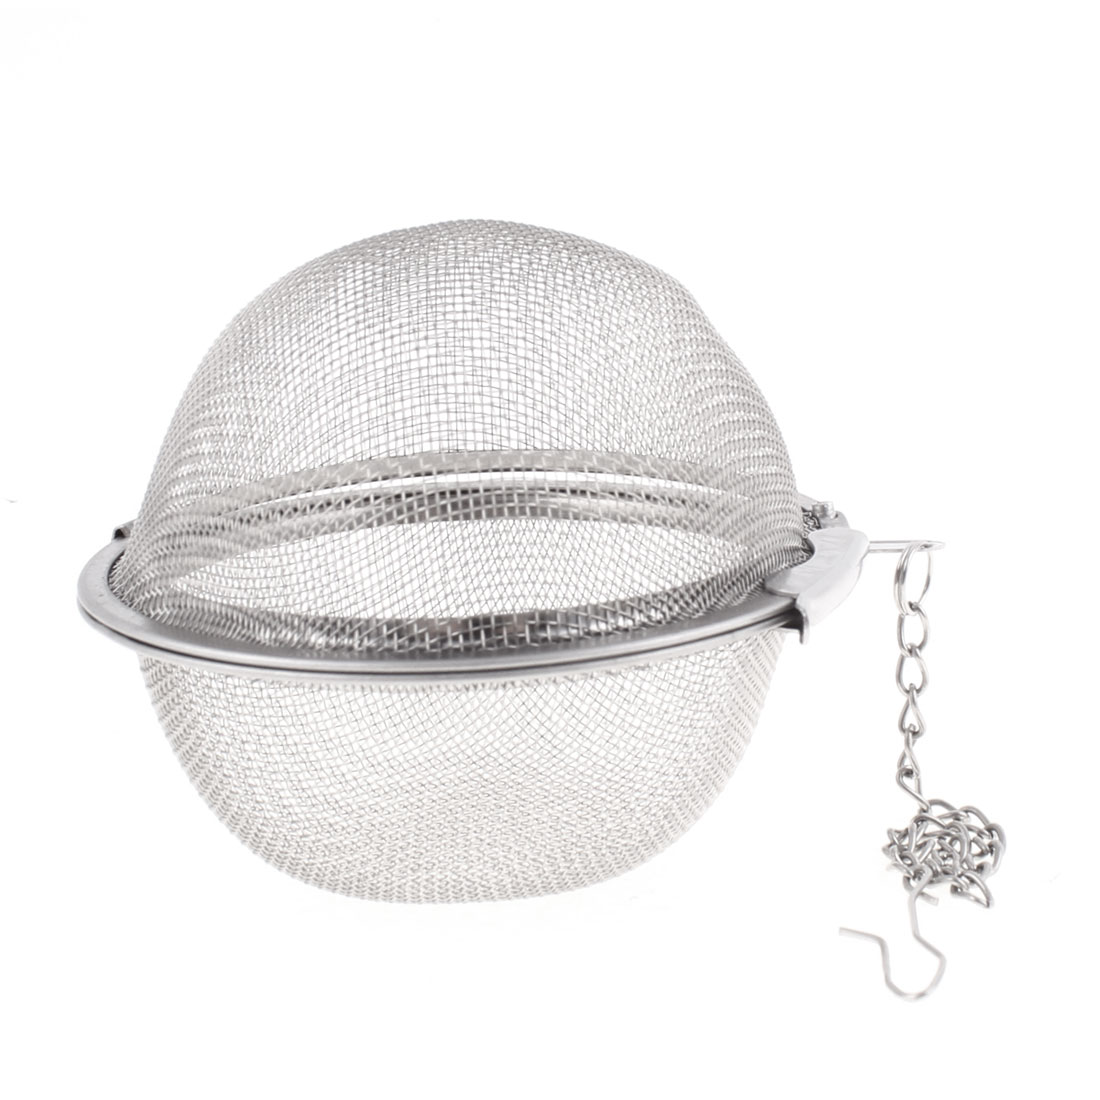 Home Teahouse Metal Sphere Mesh Design Infuser Filter Tea Strainer 7cm Dia